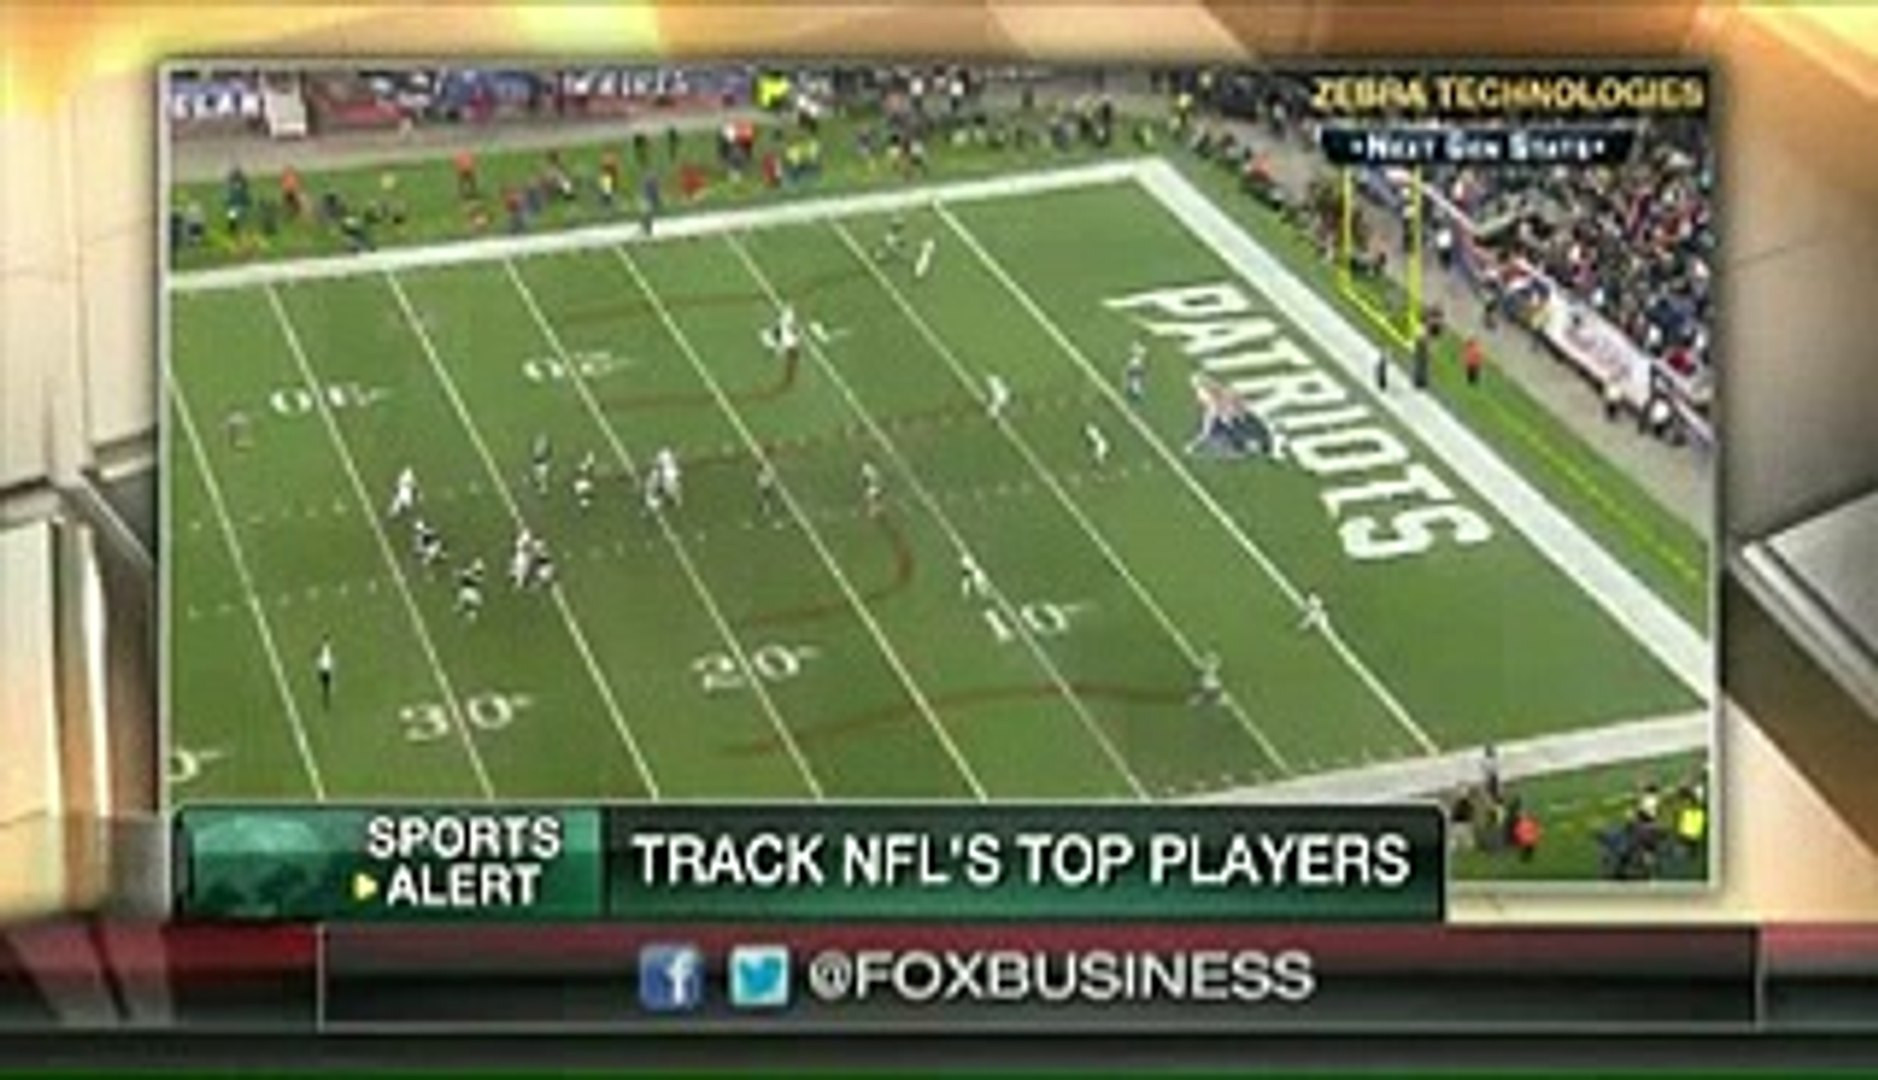 Tracking your favorite NFL players on the field - FoxTV Business News